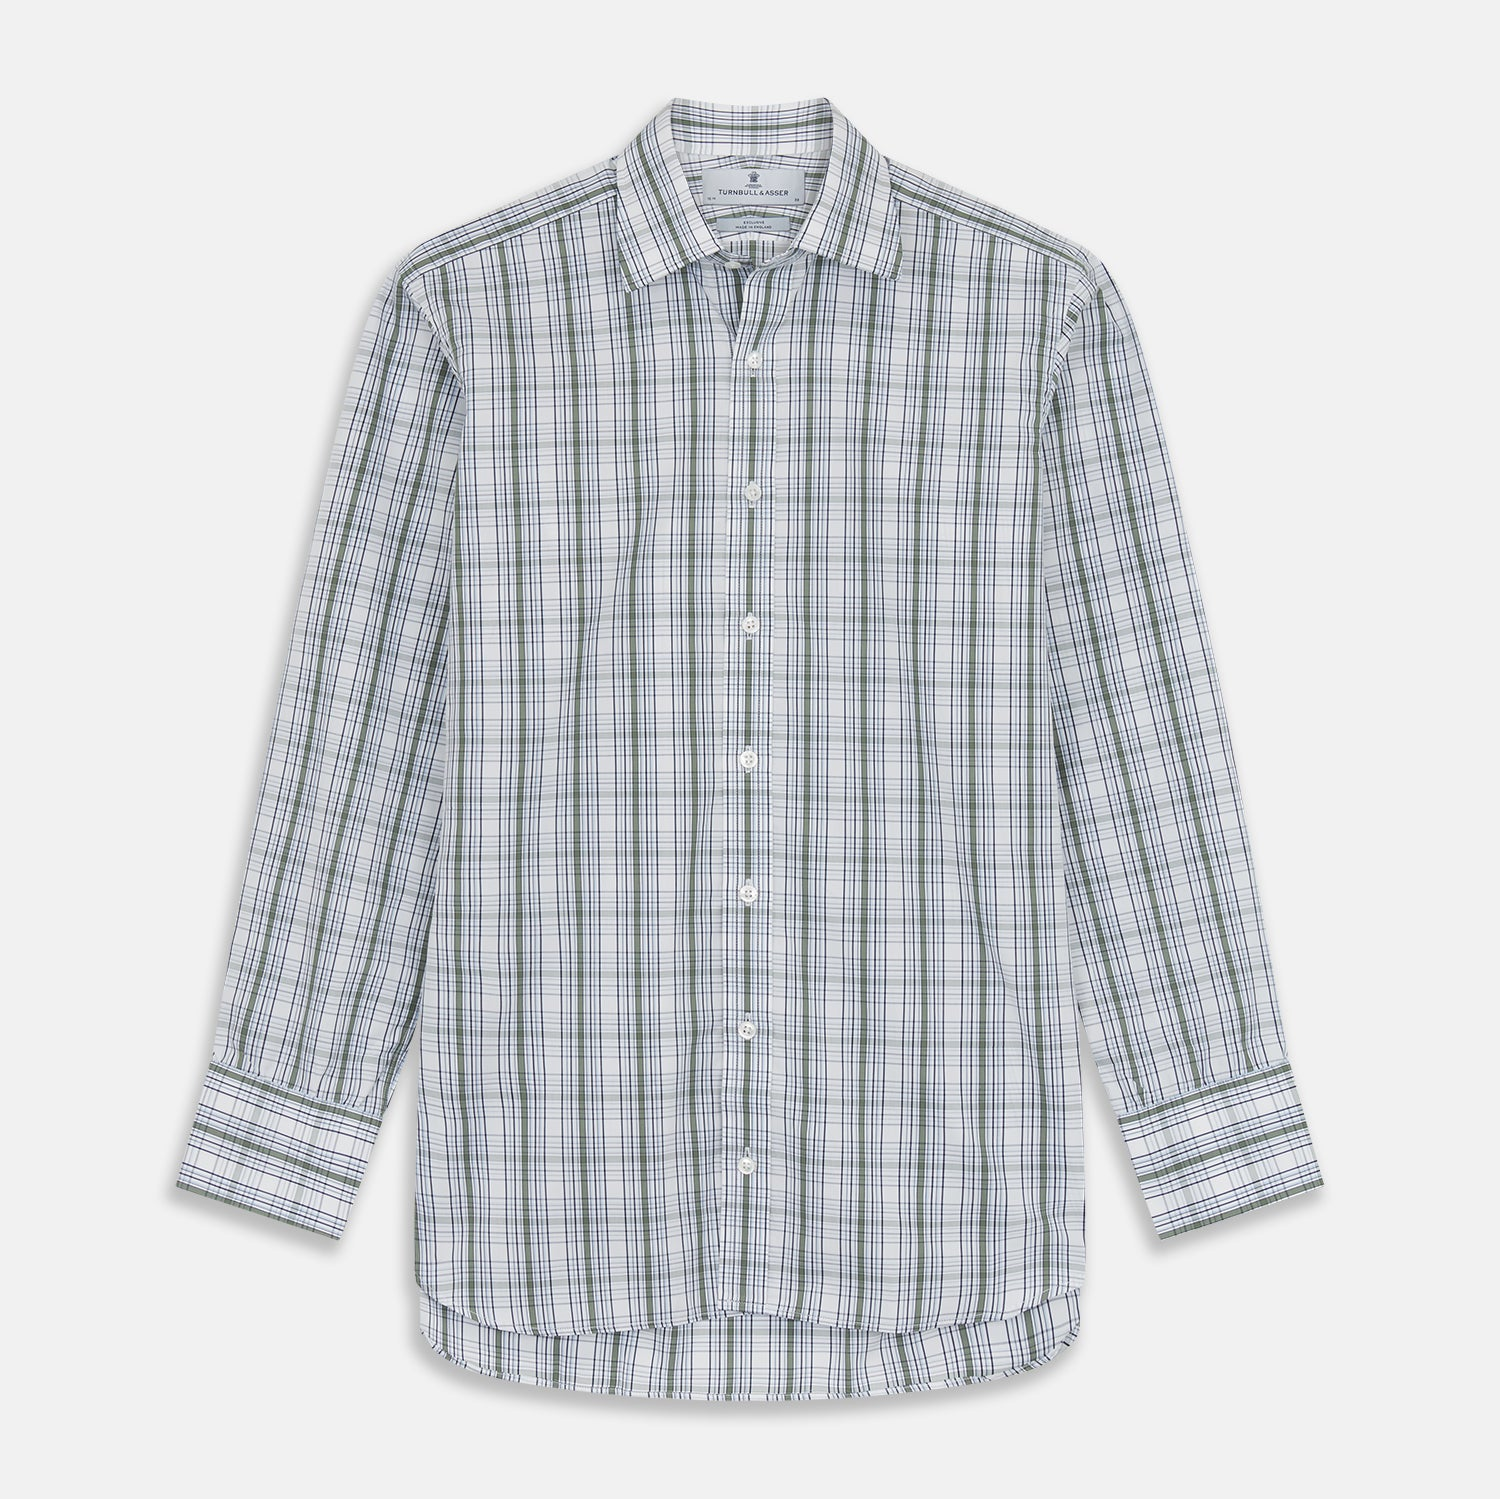 Tonal Green Check Regular Fit Shirt with T&A Collar and 3-Button Cuffs